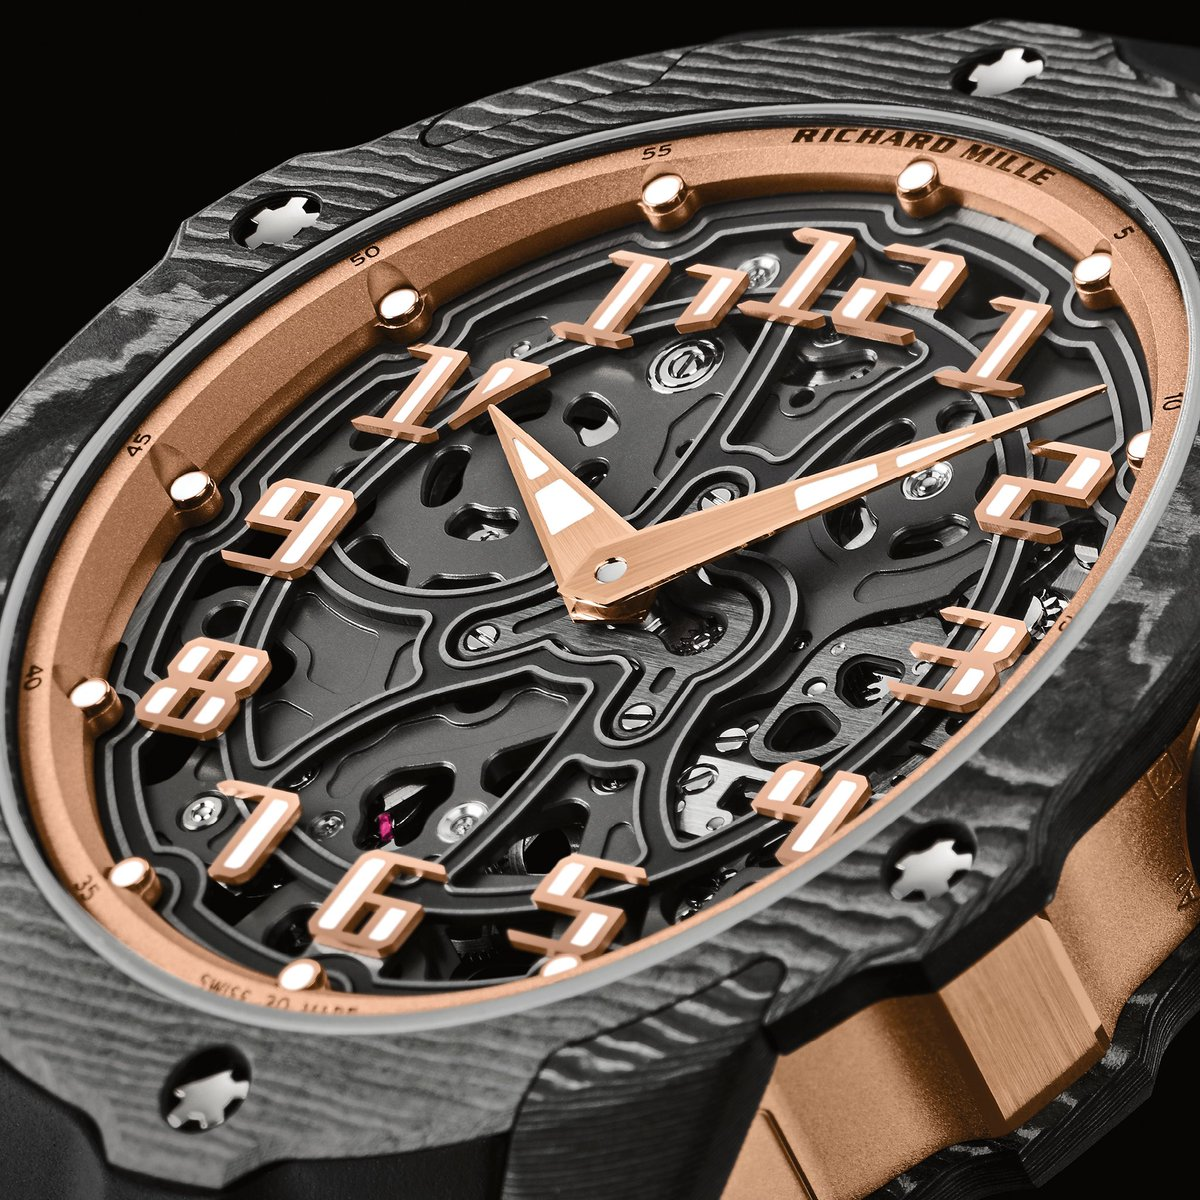 The RM 33-02's finishing accentuates the volumes by playing with shadow and light thanks to the highly graphic skeletonization. The exterior elements and hour-markers further add to this complex sense of depth and power.